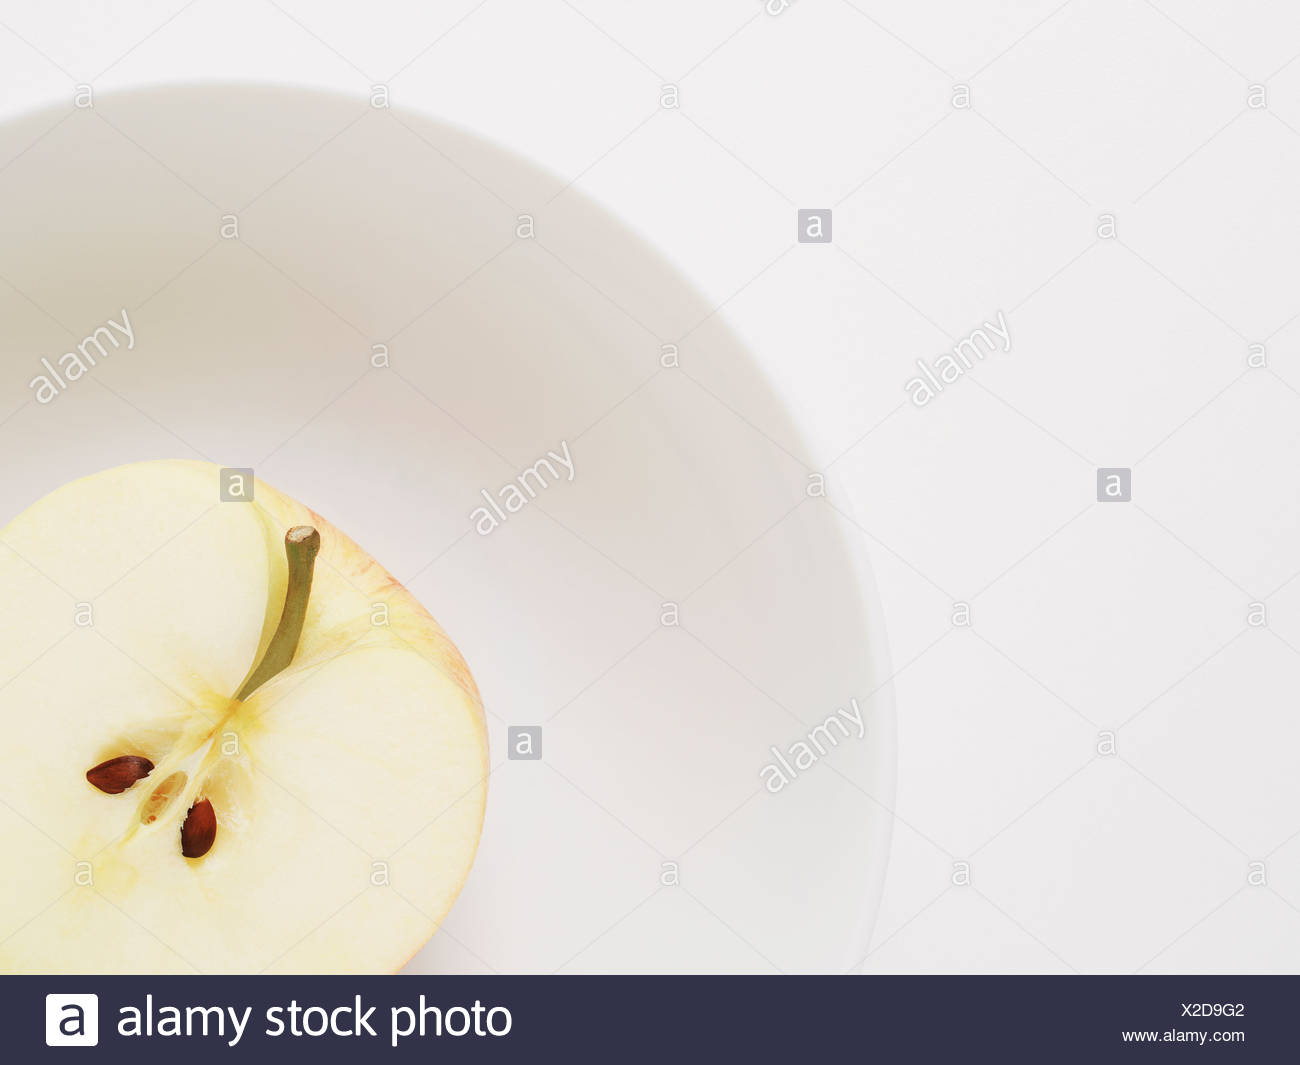 Half apple with core in white bowl - Stock Image